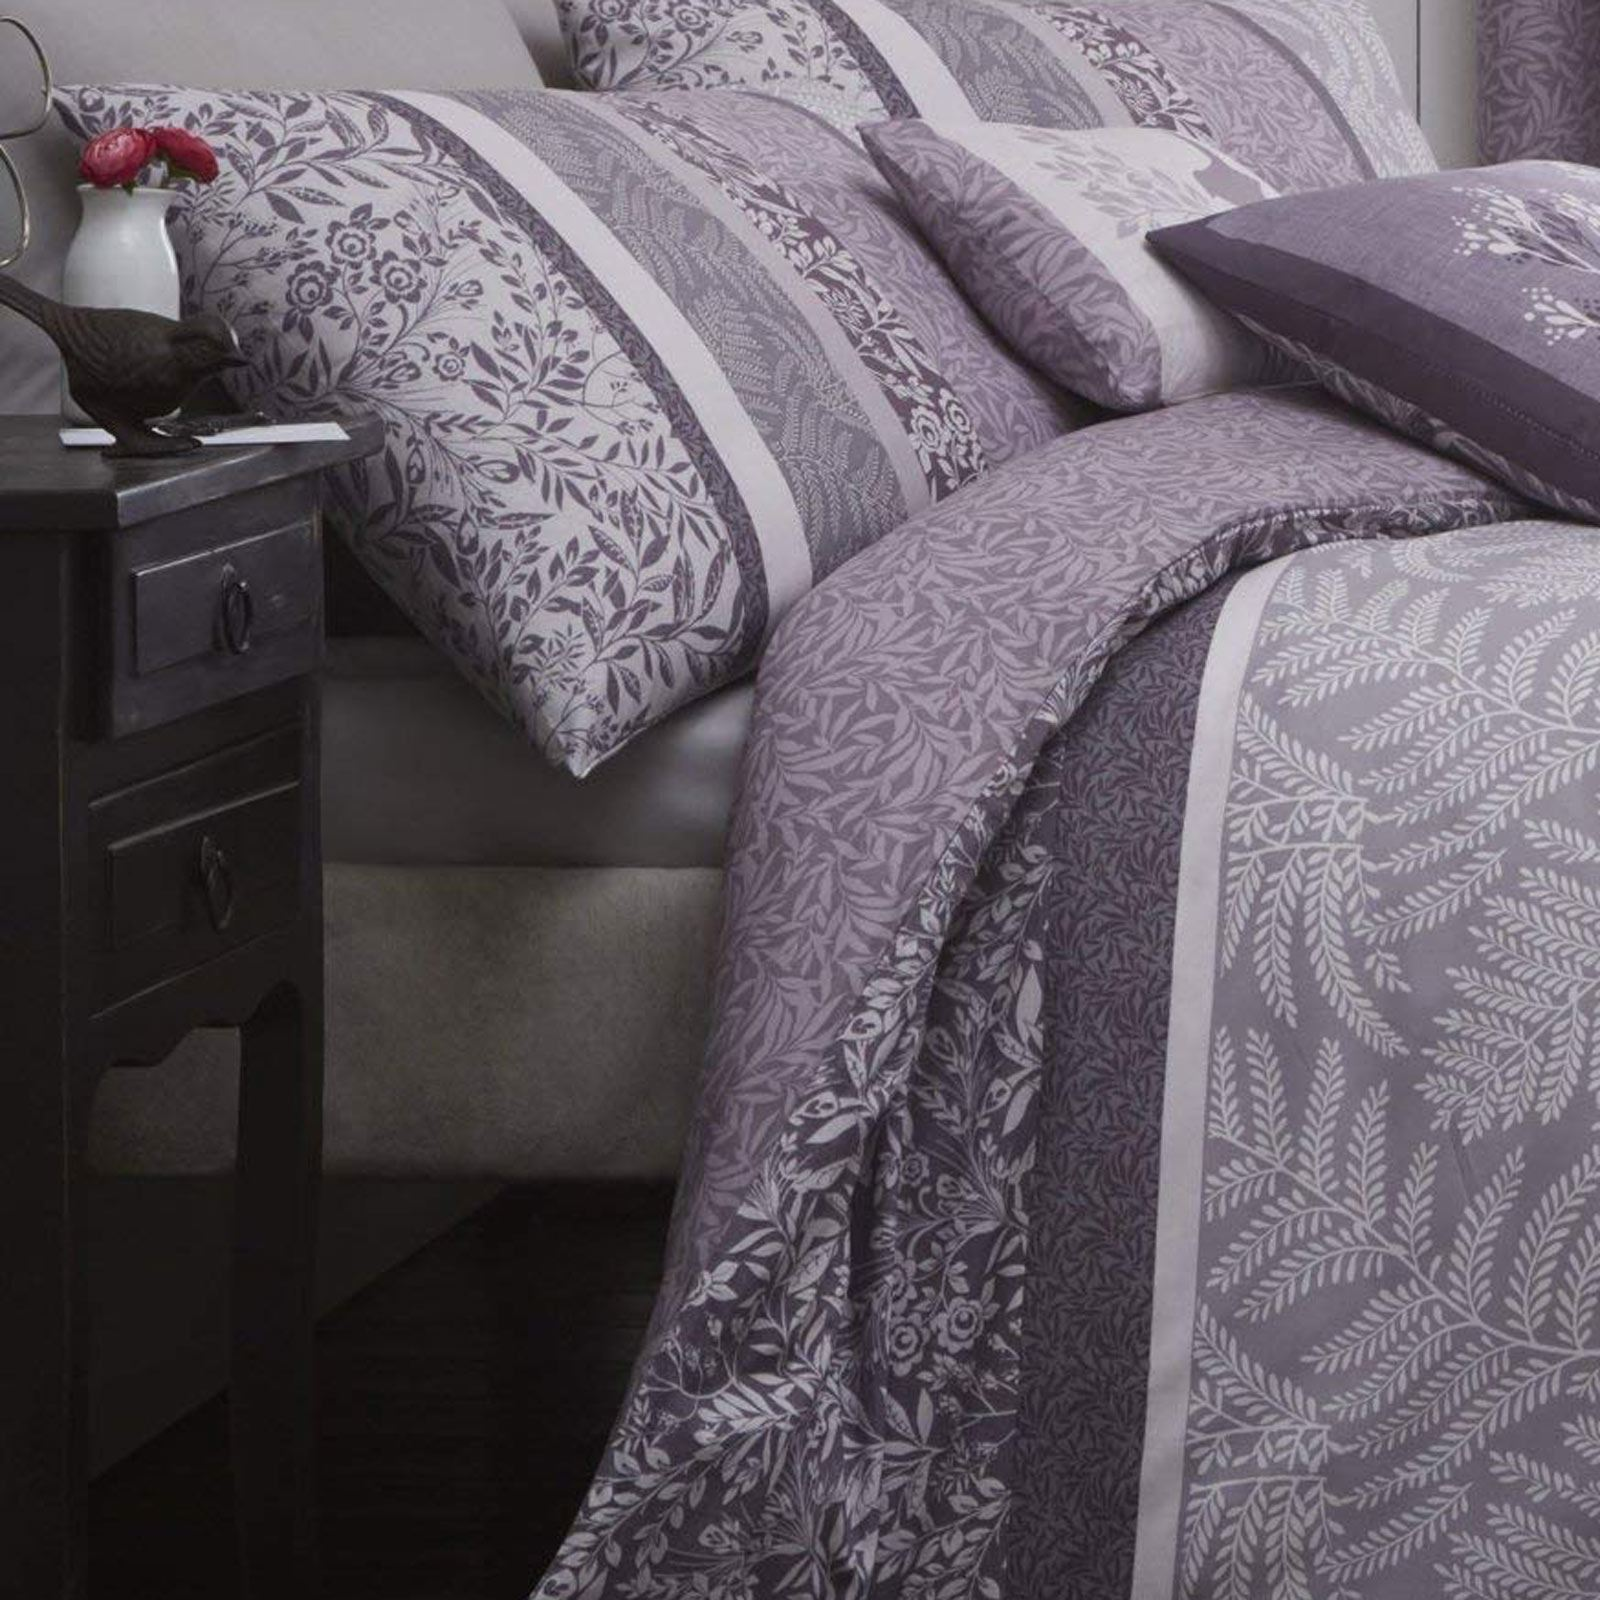 Heather Duvet Cover Lilac Purple Printed Cotton Quilt Set